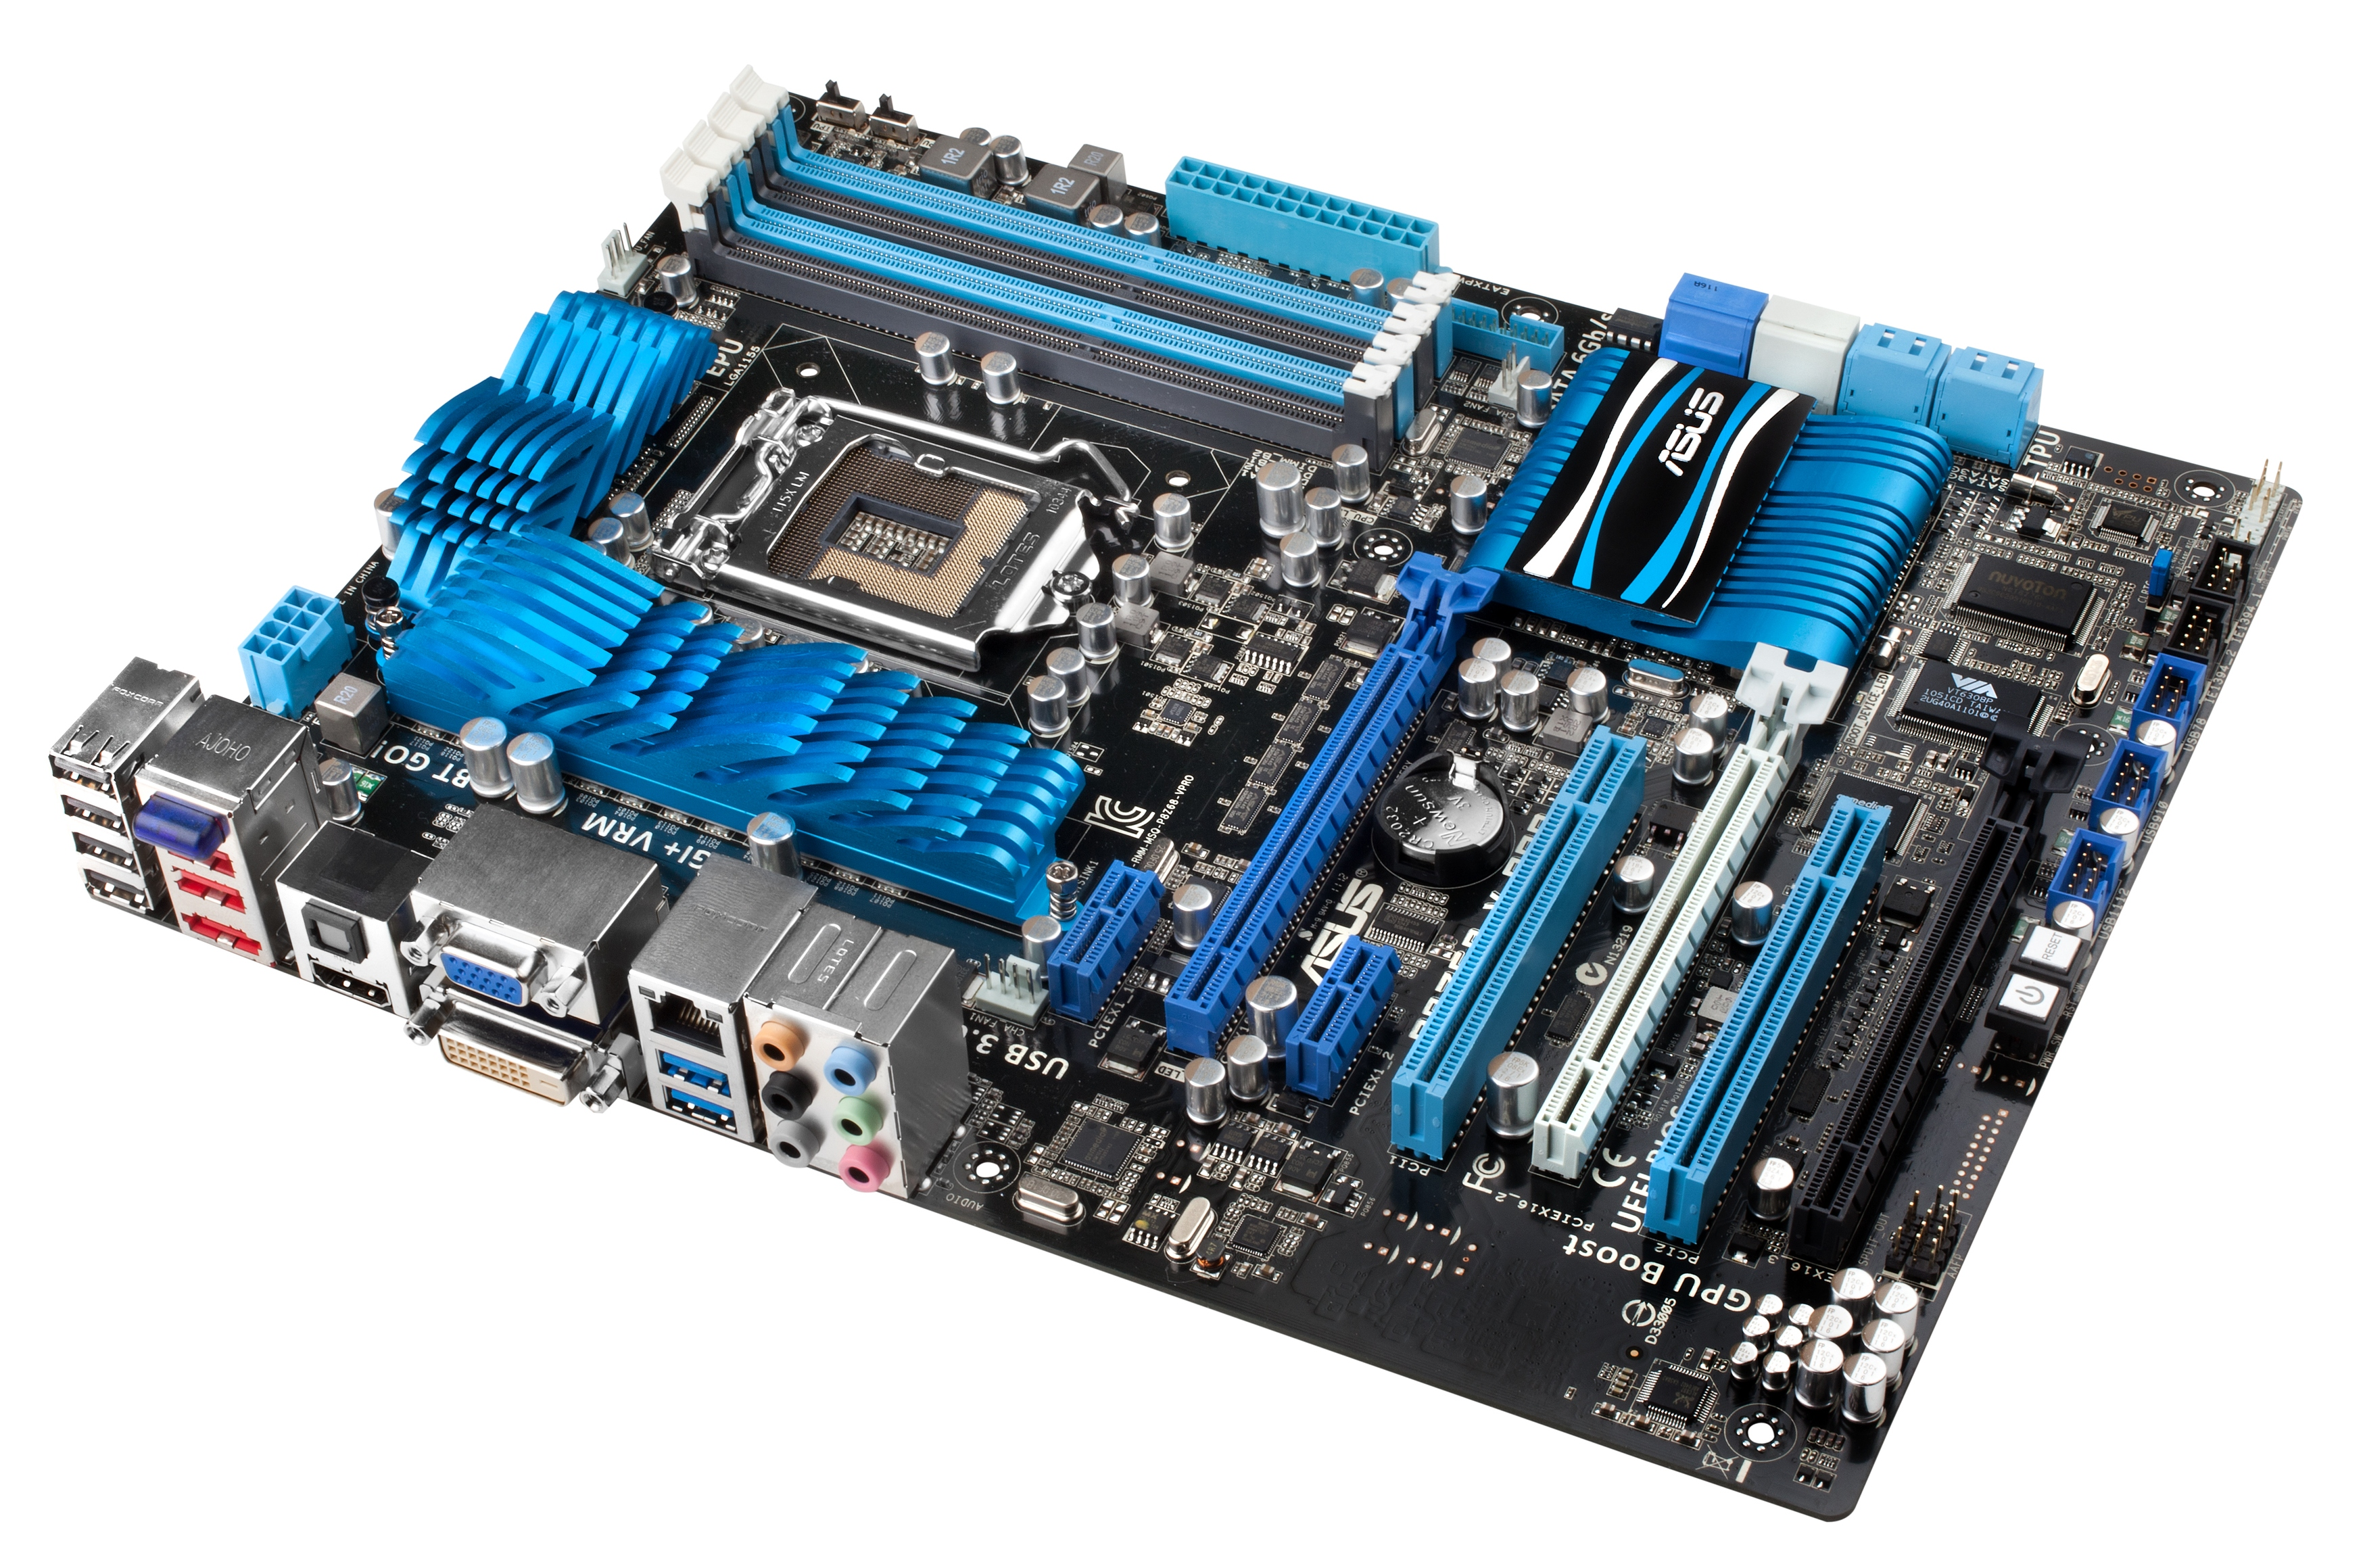 ASUS P8Z68 V Motherboards On Sale! Shop Computer Parts & Accessories!